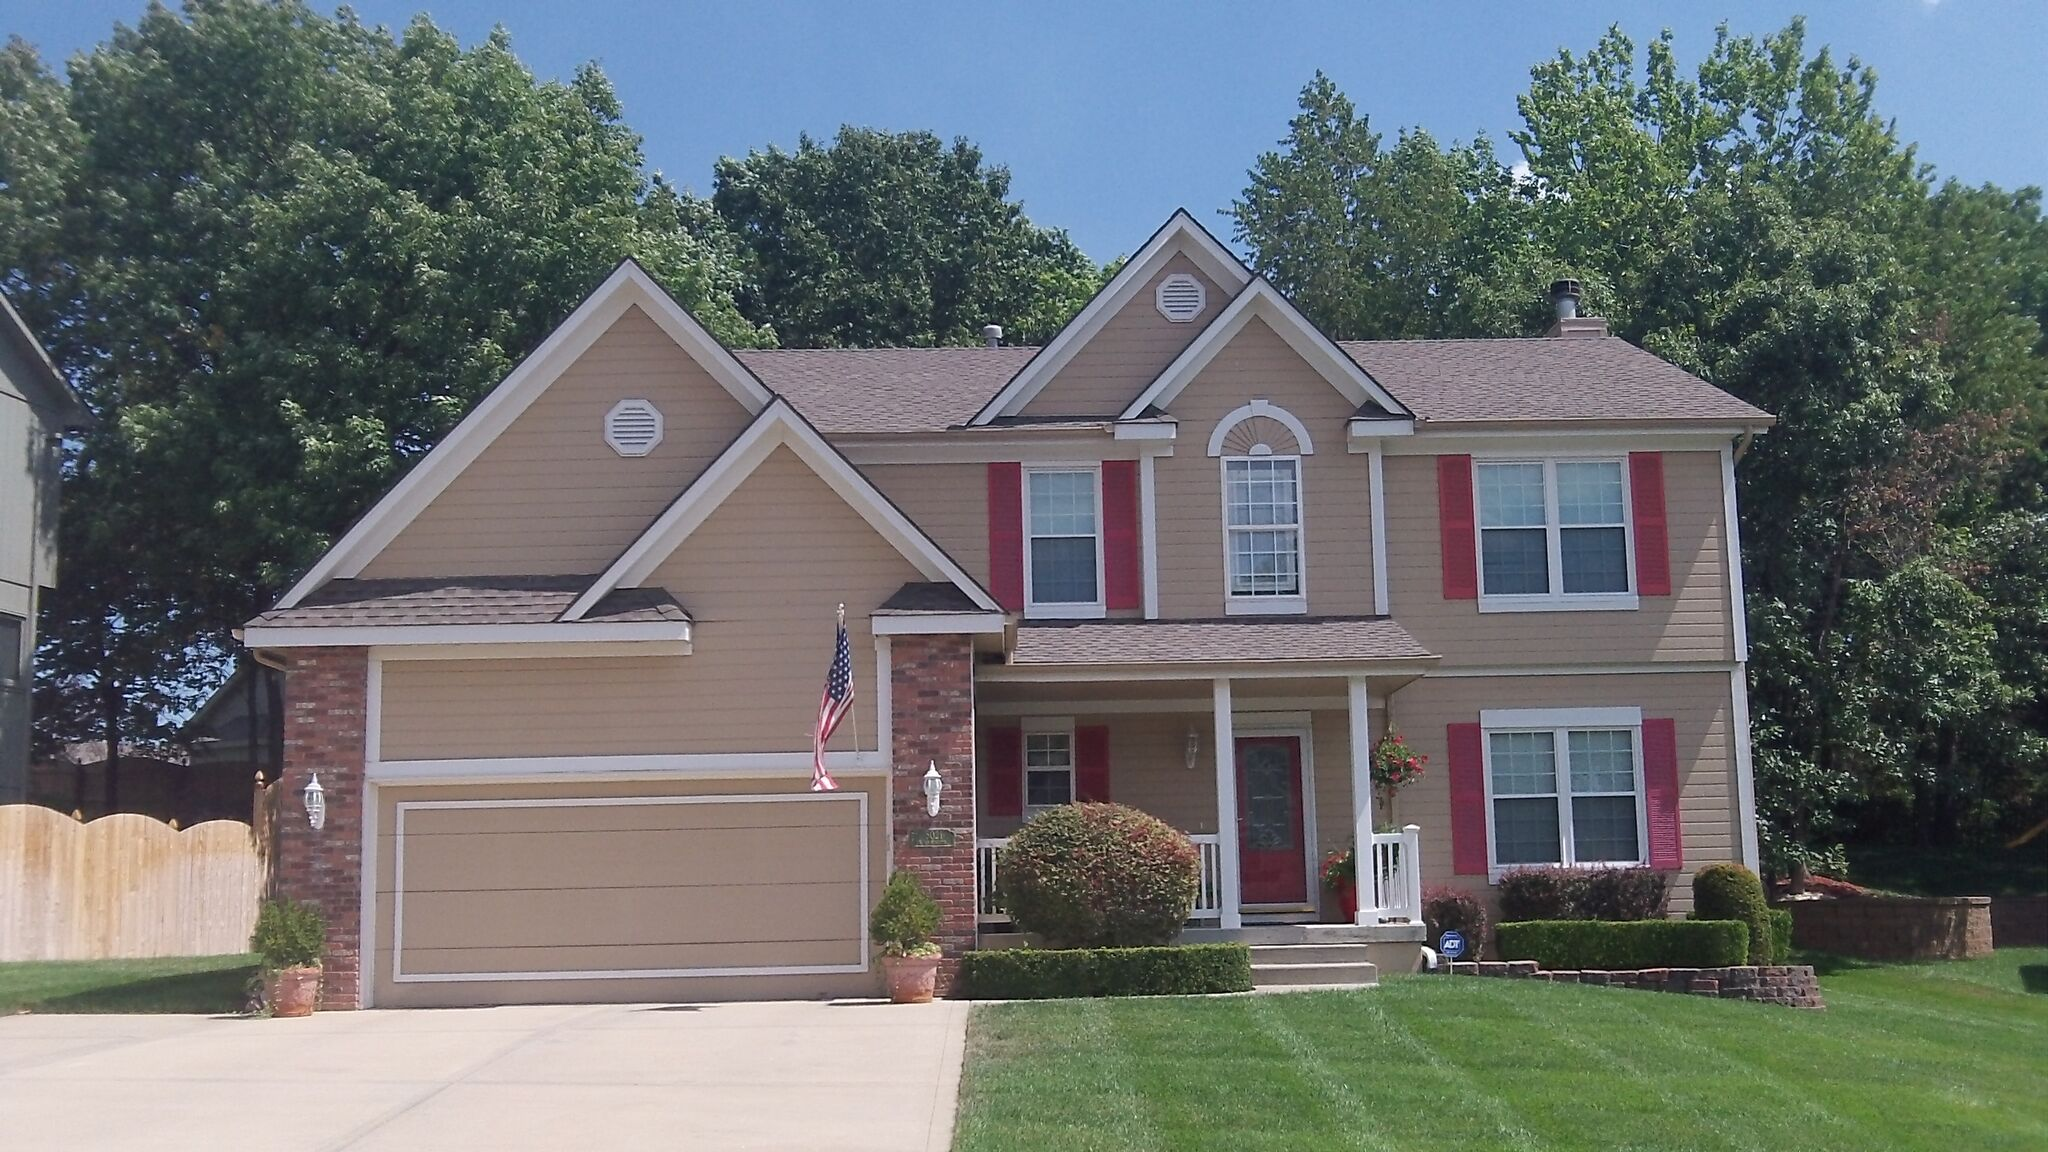 House painting by CertaPro house painters in Kansas City Northland